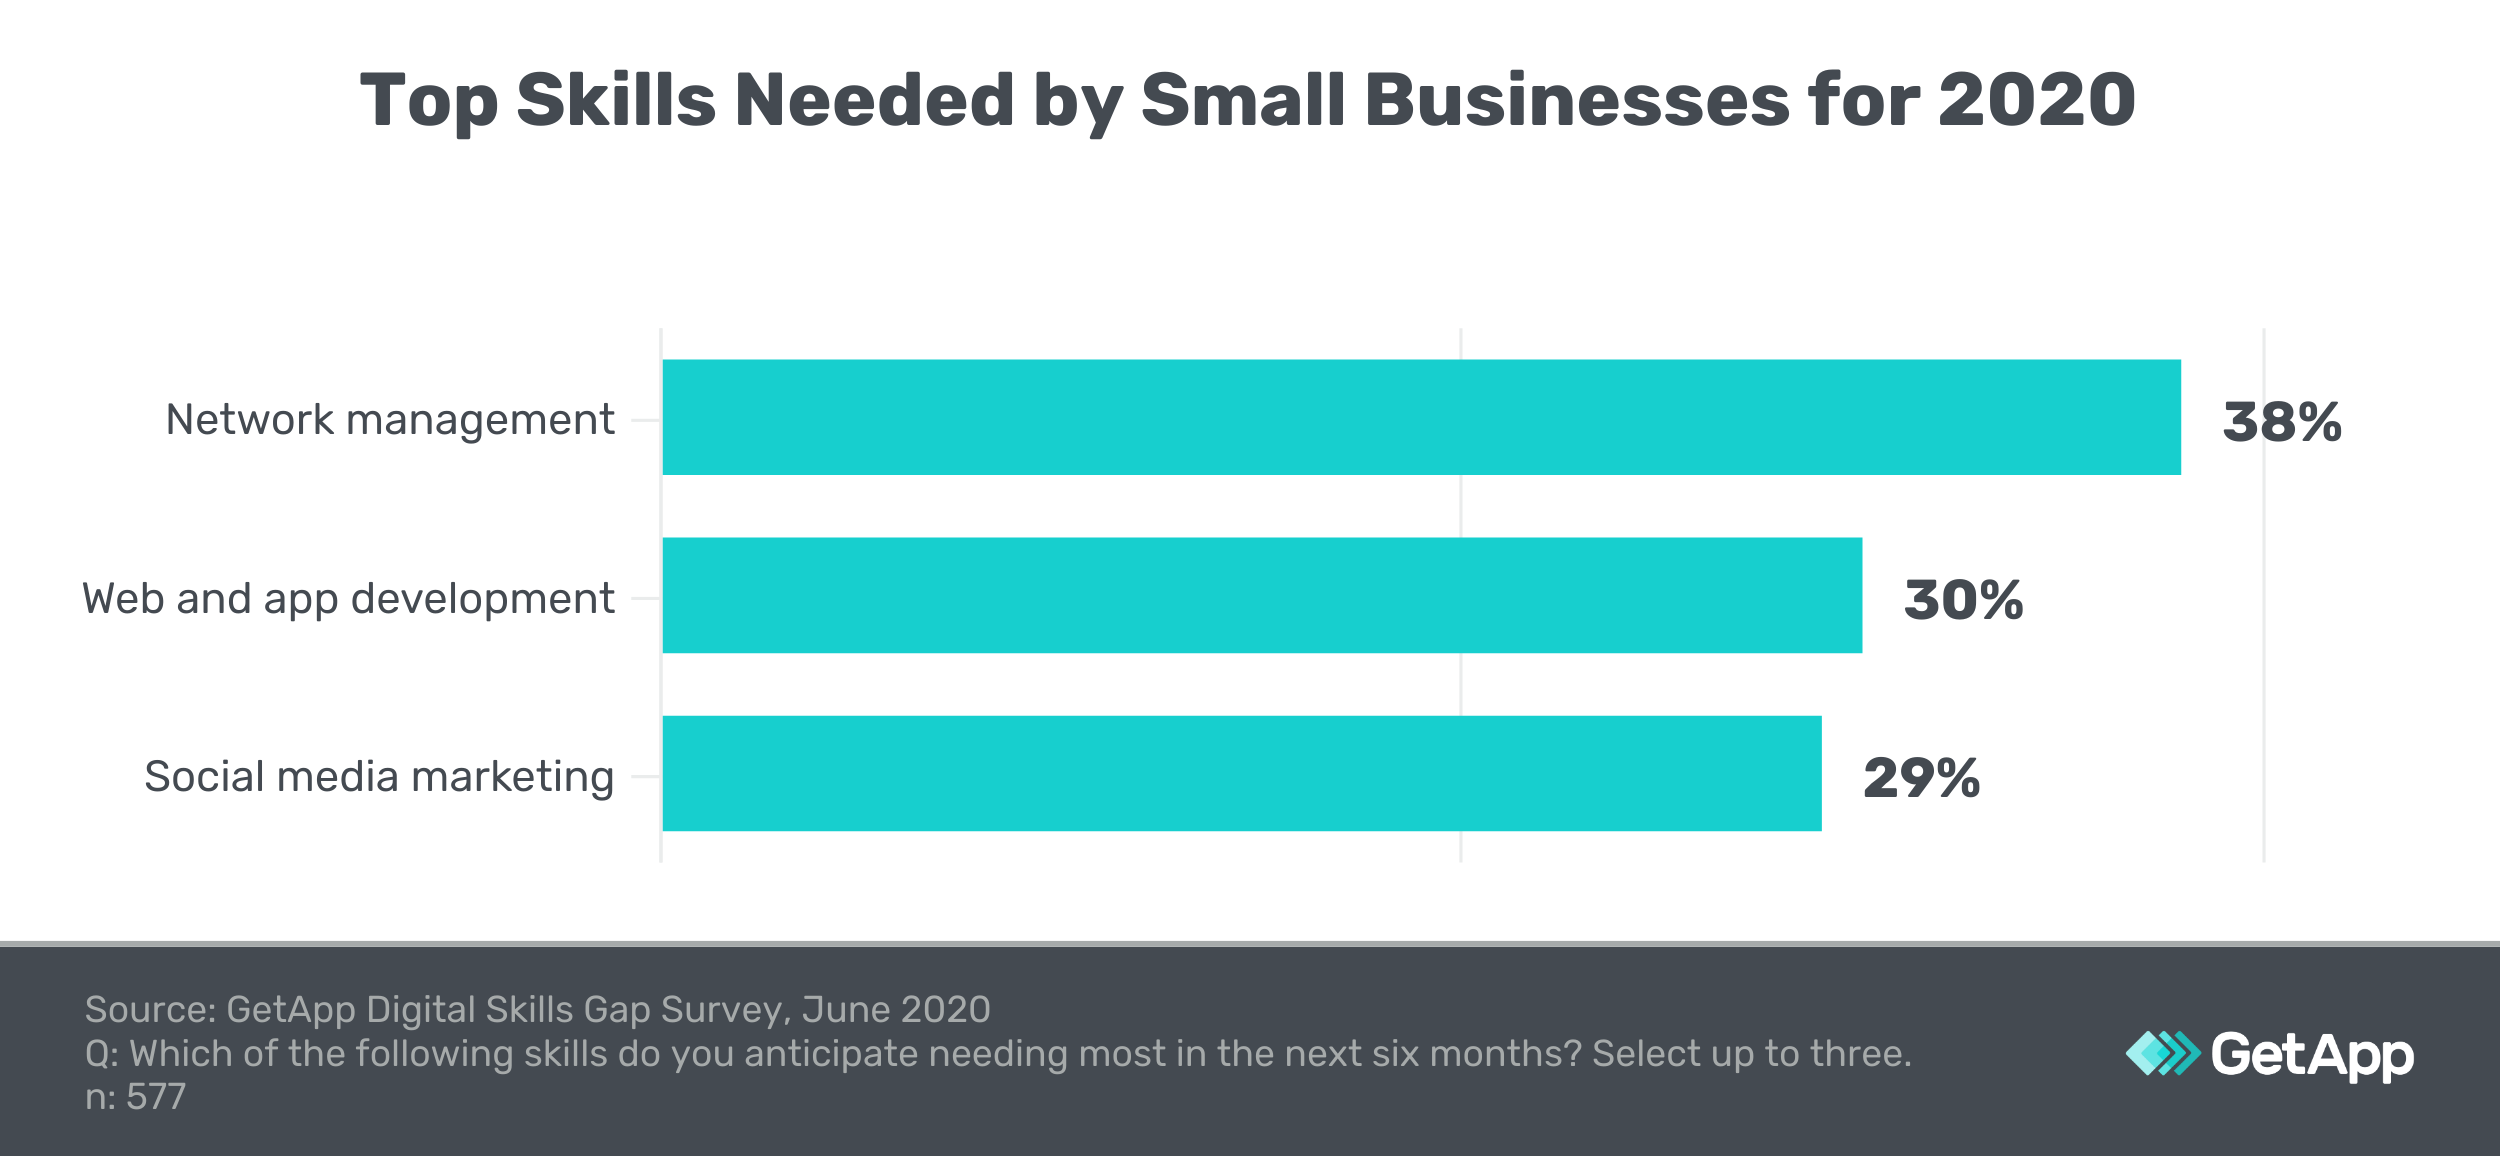 top skills small businesses need for 2020